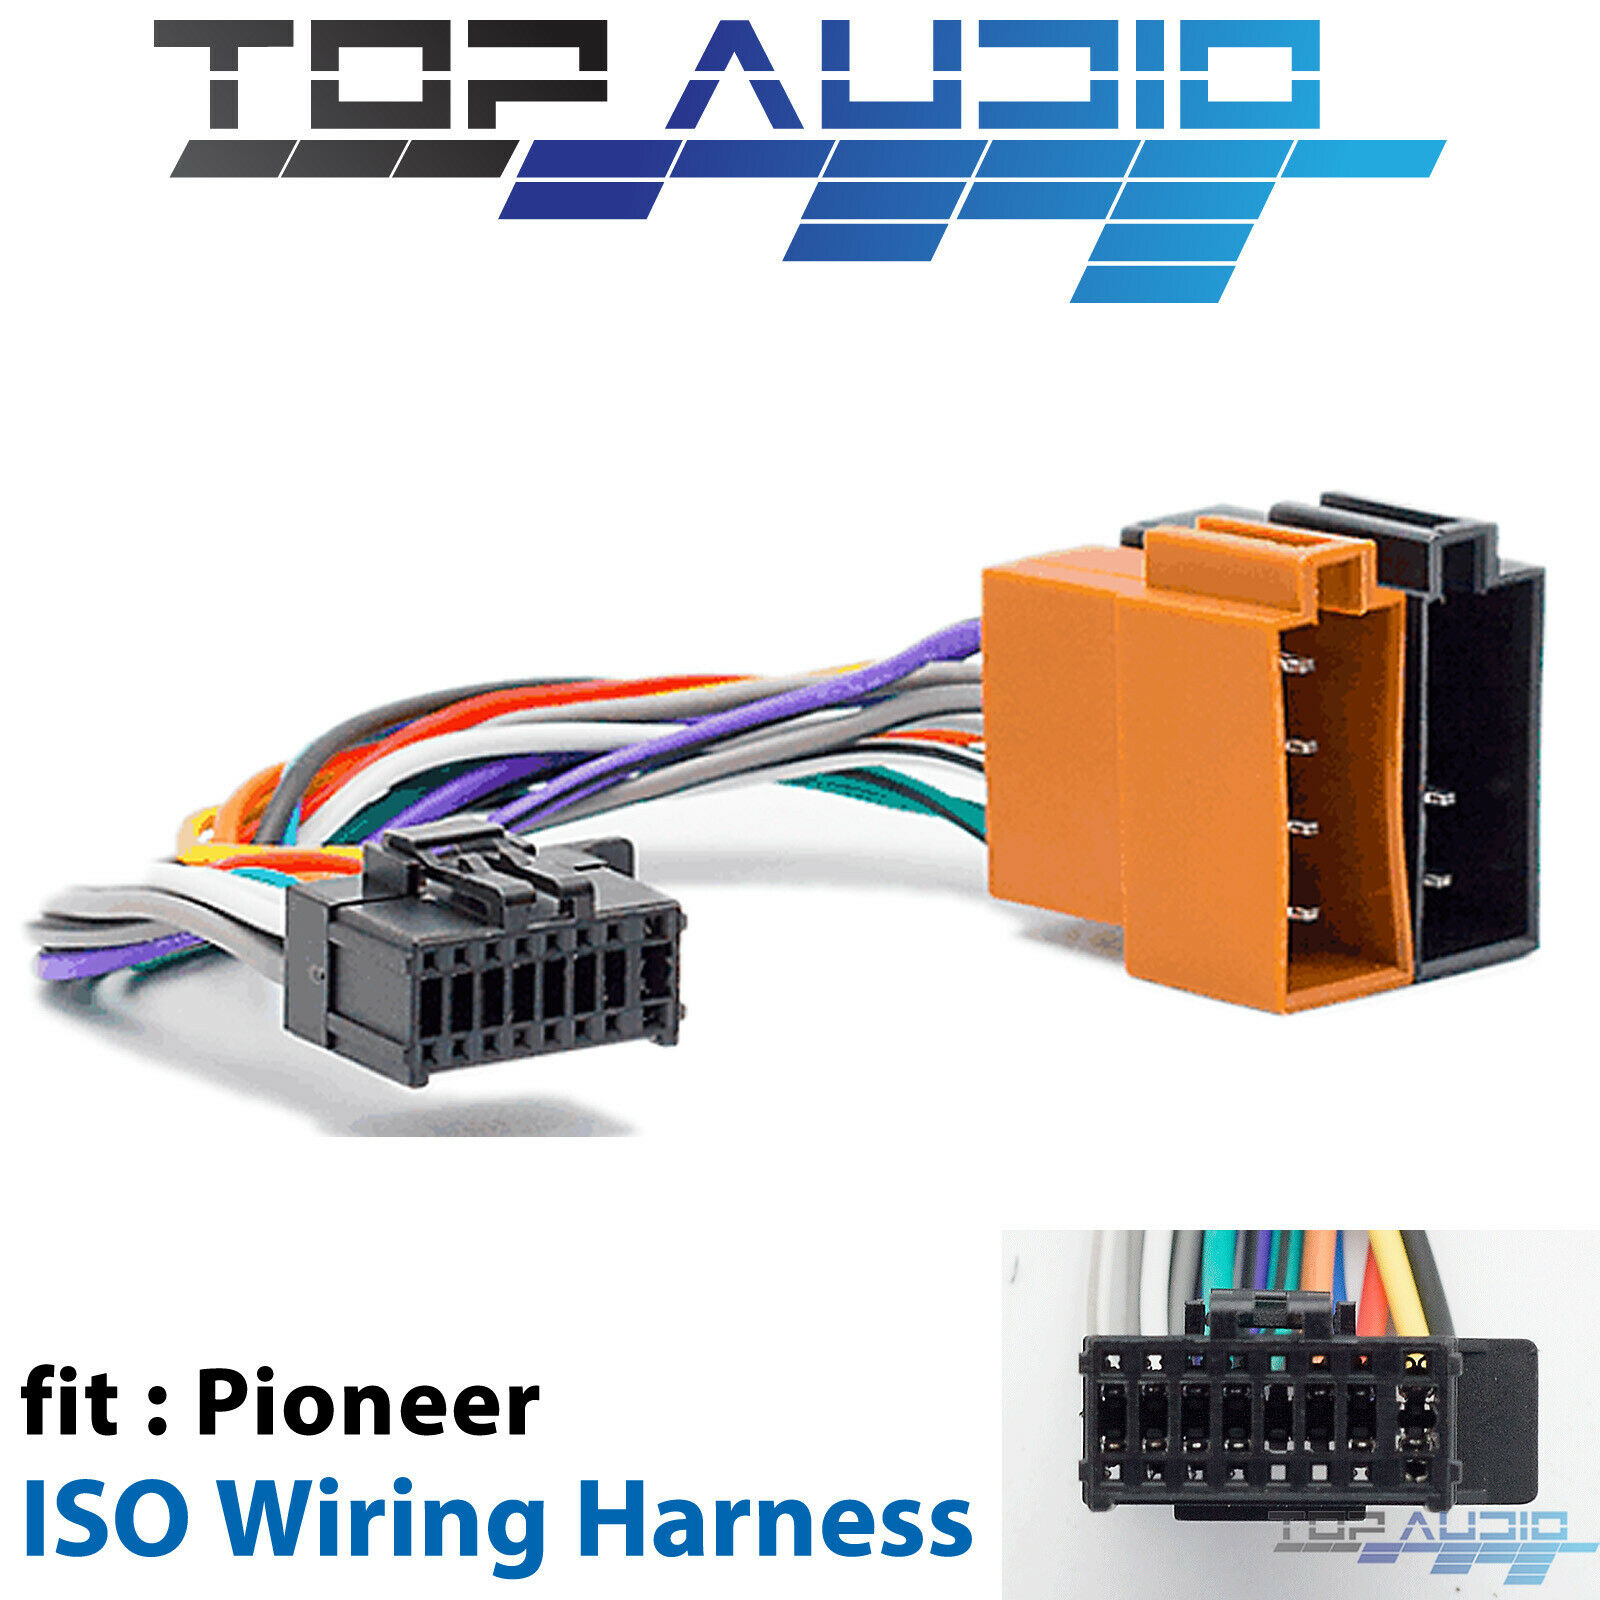 hight resolution of pioneer iso wiring harness fit fh x575ui fh x775bt deh x8750bt deh 1 of 4 see more pioneer wiring harness adapters for gm